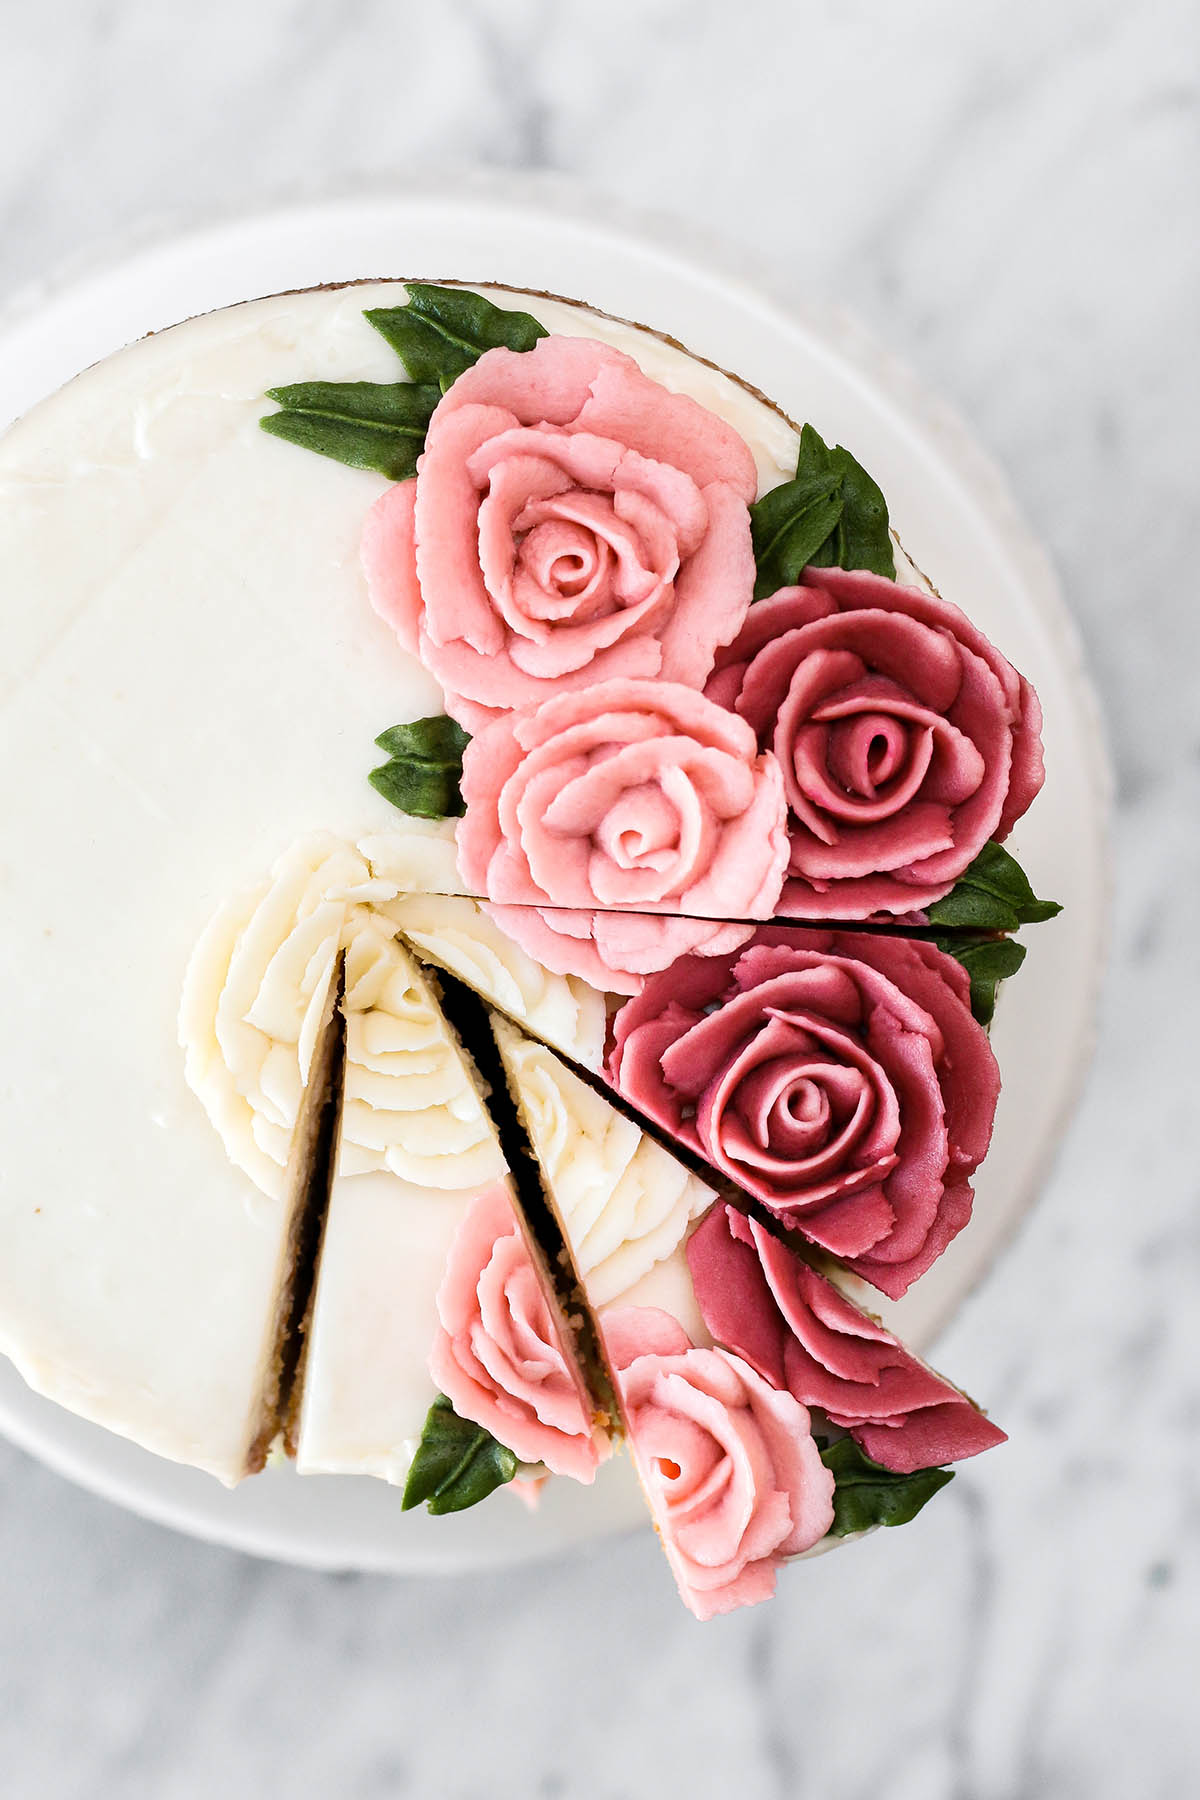 A lemon buttermilk cake with buttercream roses on the top and three slices cut, top down view.